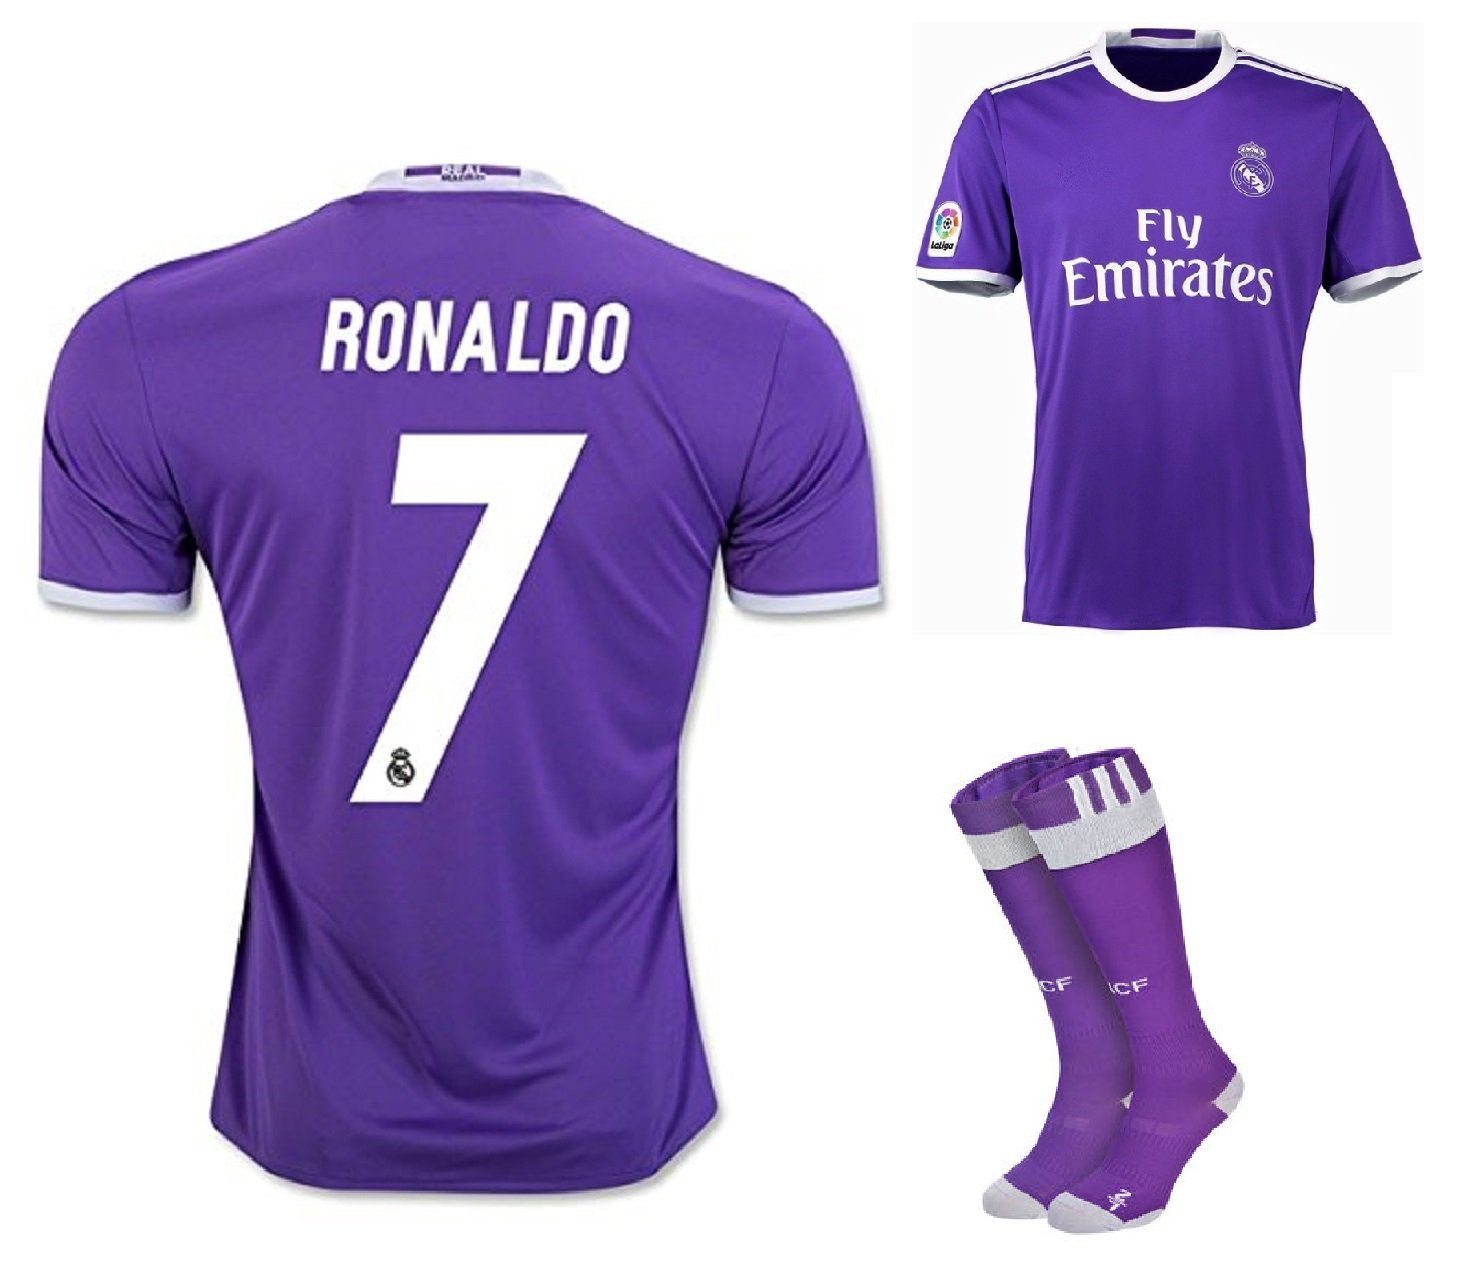 Real Madrid #7 Ronaldo 2nd Away jersey with shorts & socks kid youth for age 8-10